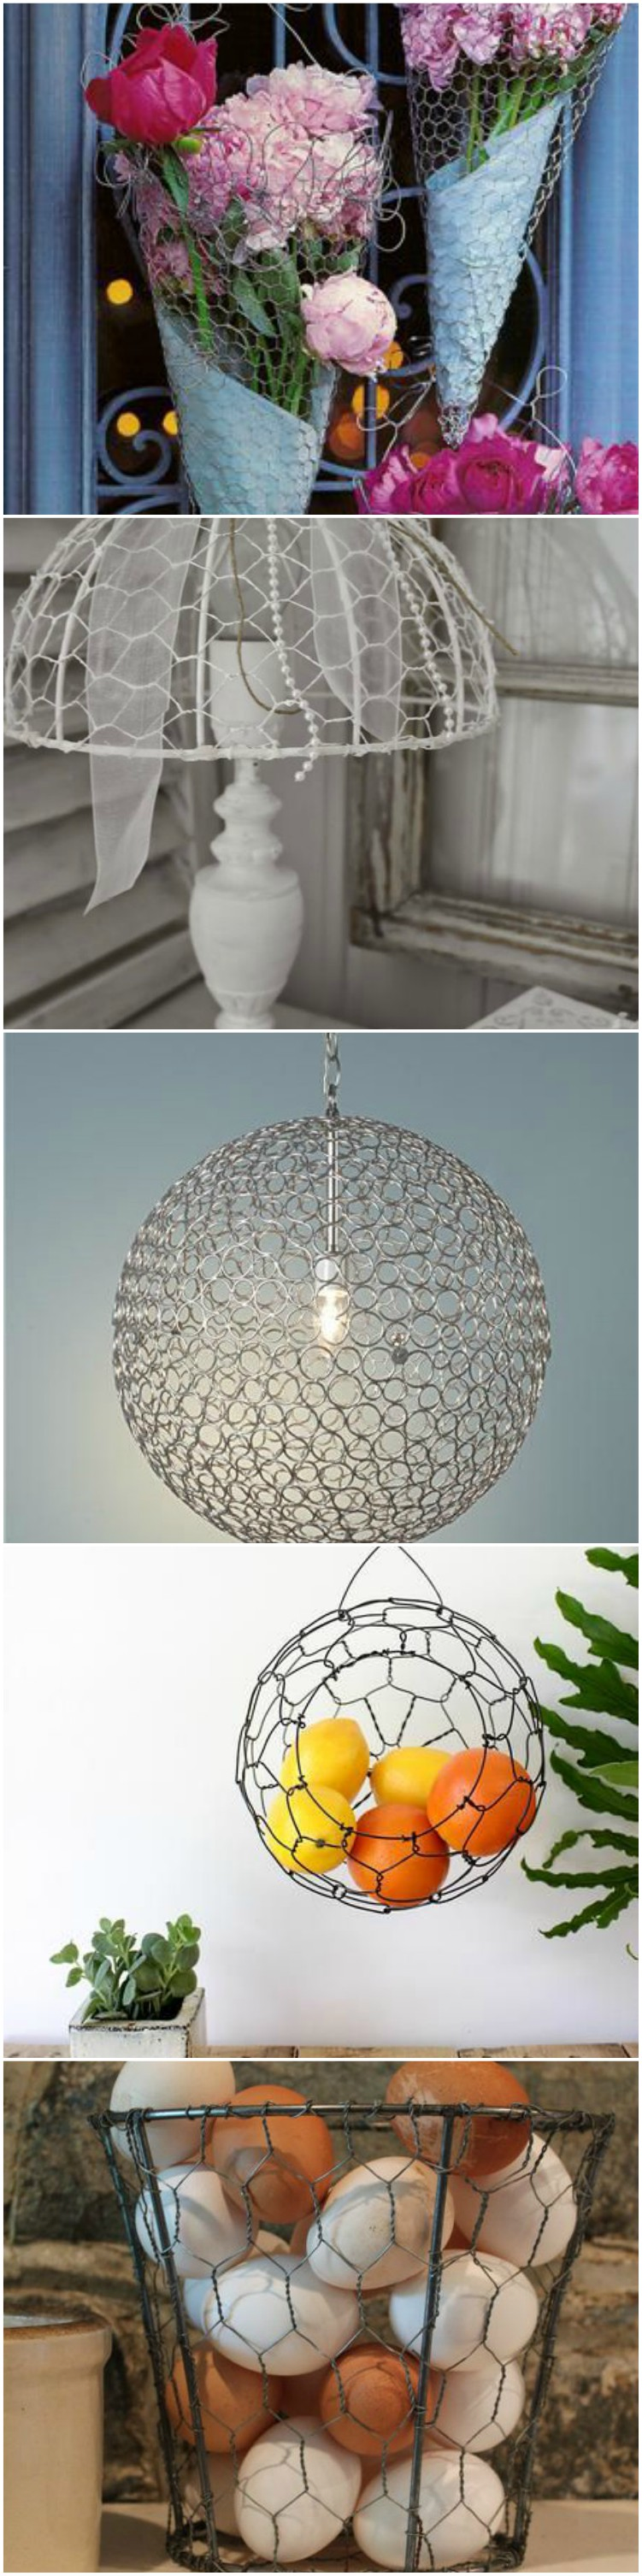 10 brilliant diy chicken wire craft ideas homeadmire for Chicken wire craft ideas